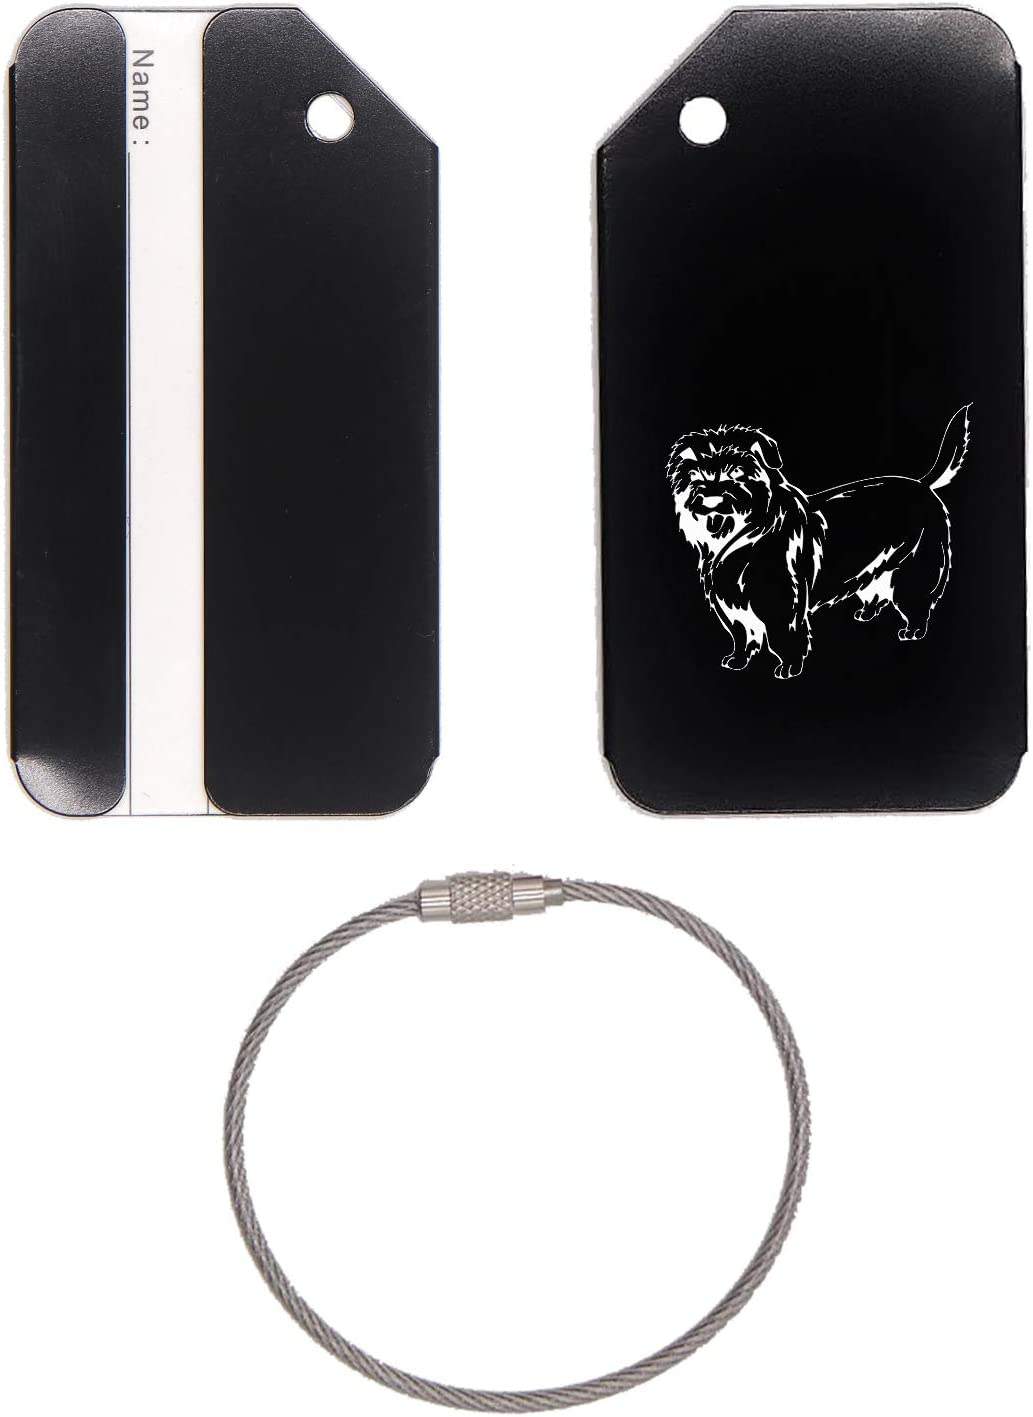 Dutch Smoushond Dog Stainless Steel - Engraved Luggage Tag (Jet Black) - United States Military Standard - For Any Type Of Luggage, Suitcases, Gym Bags, Briefcases, Golf Bags